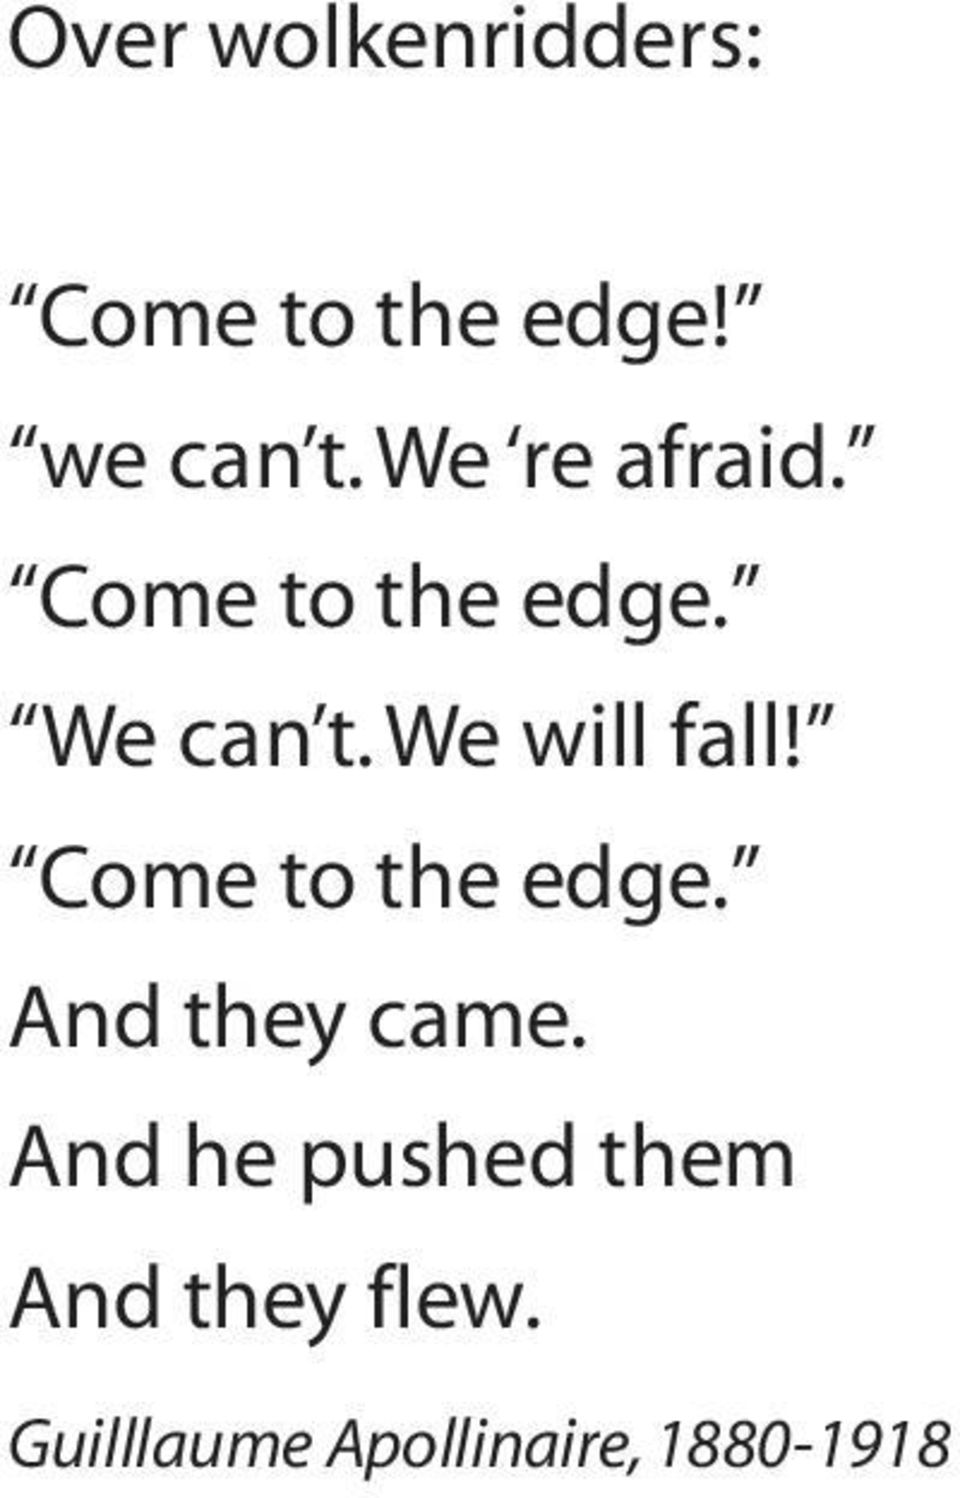 We will fall! Come to the edge. And they came.